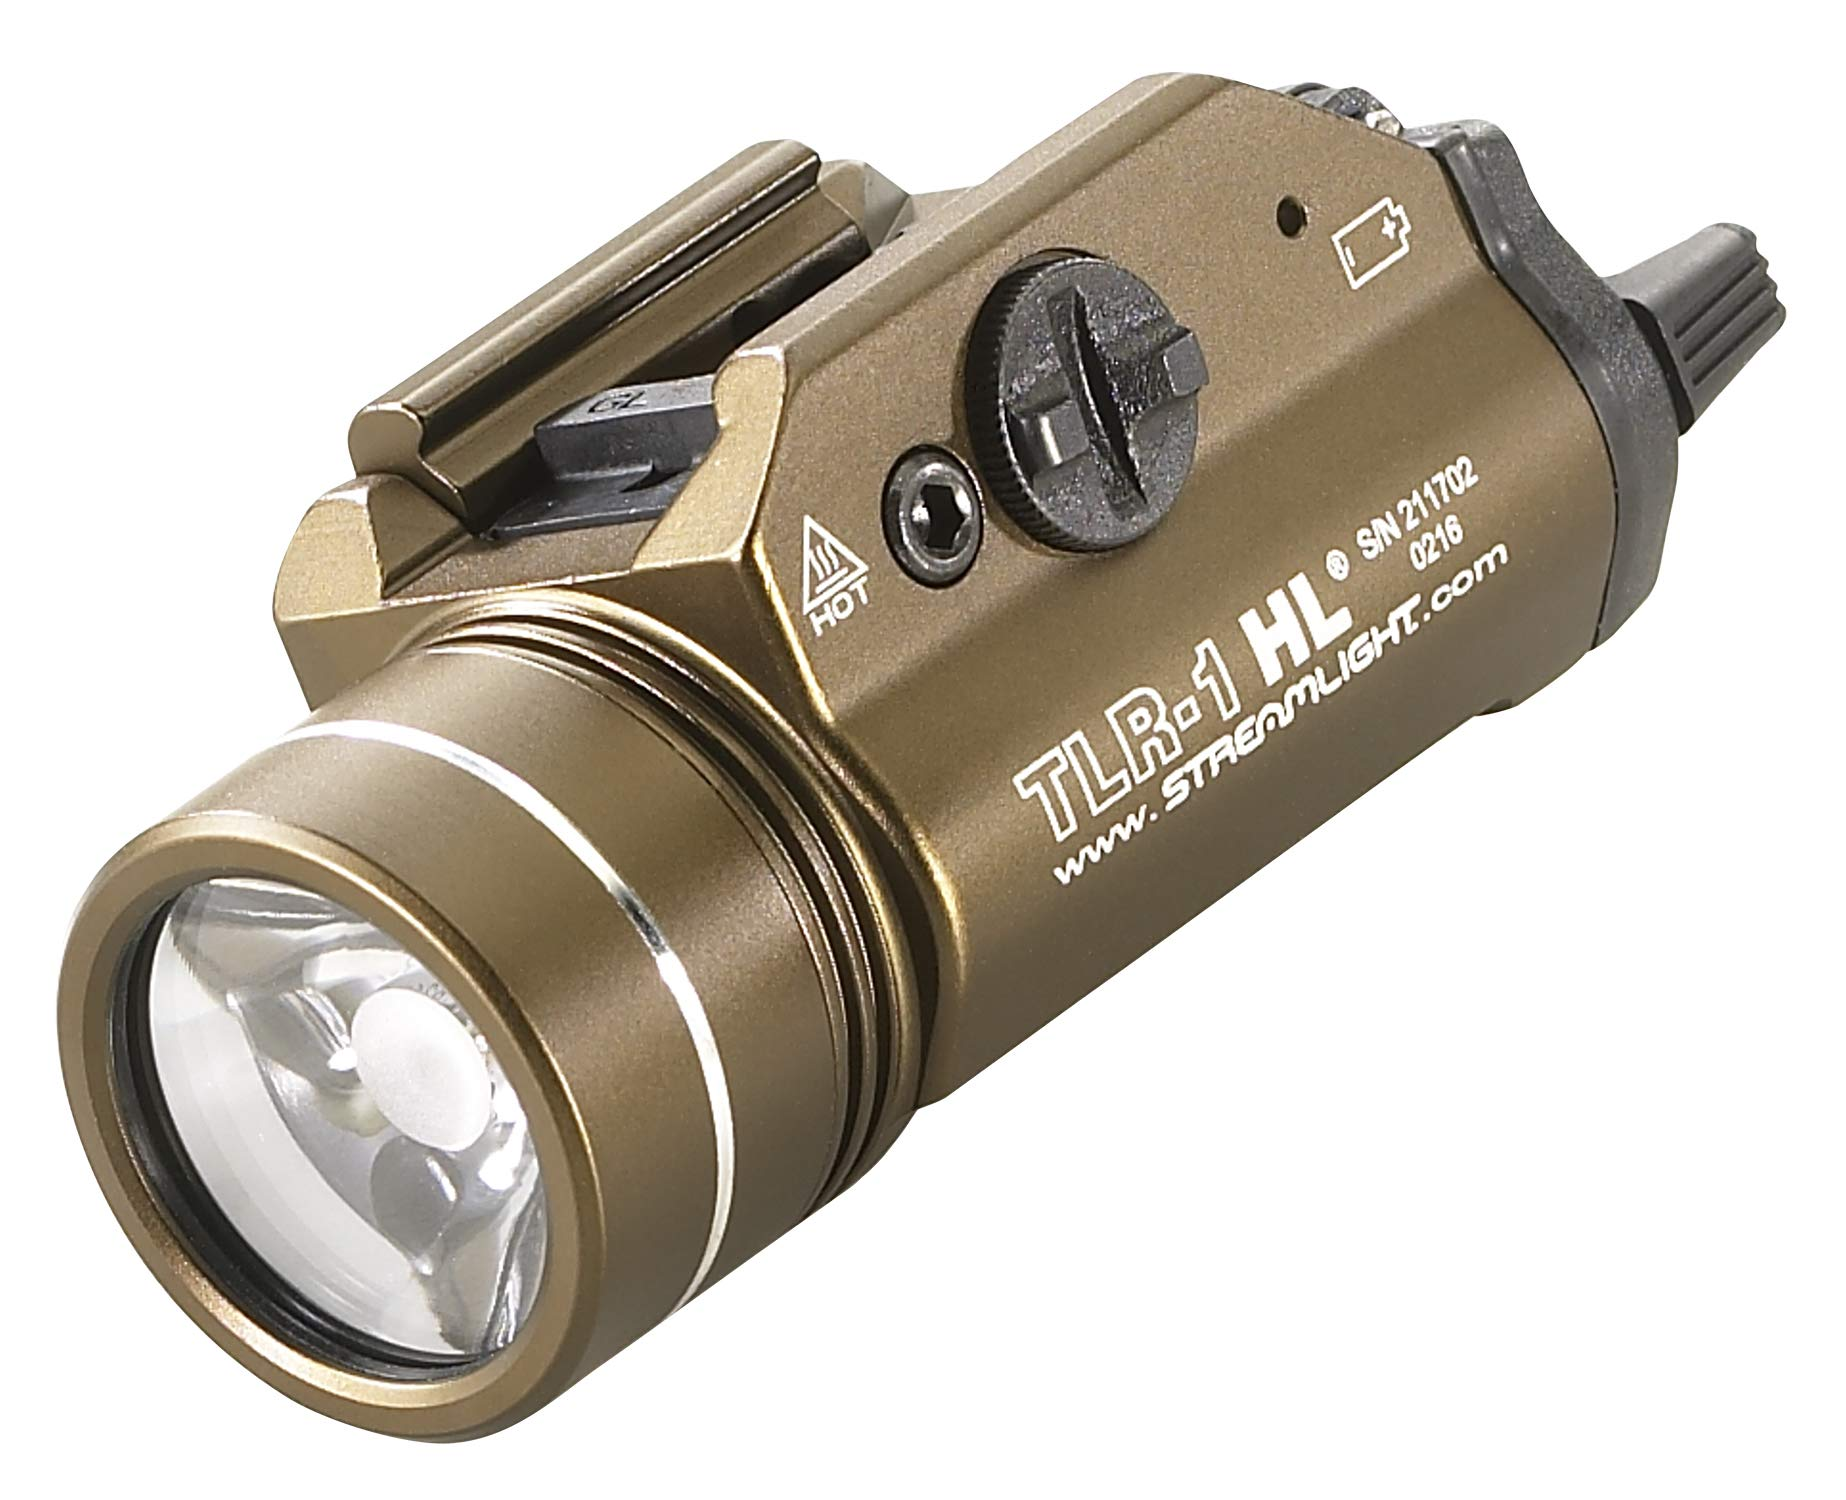 Streamlight 69267 TLR-1-HL High Lumen Rail-Mounted Tactical Light, Flat Dark Earth Brown - 800 Lumens by Streamlight